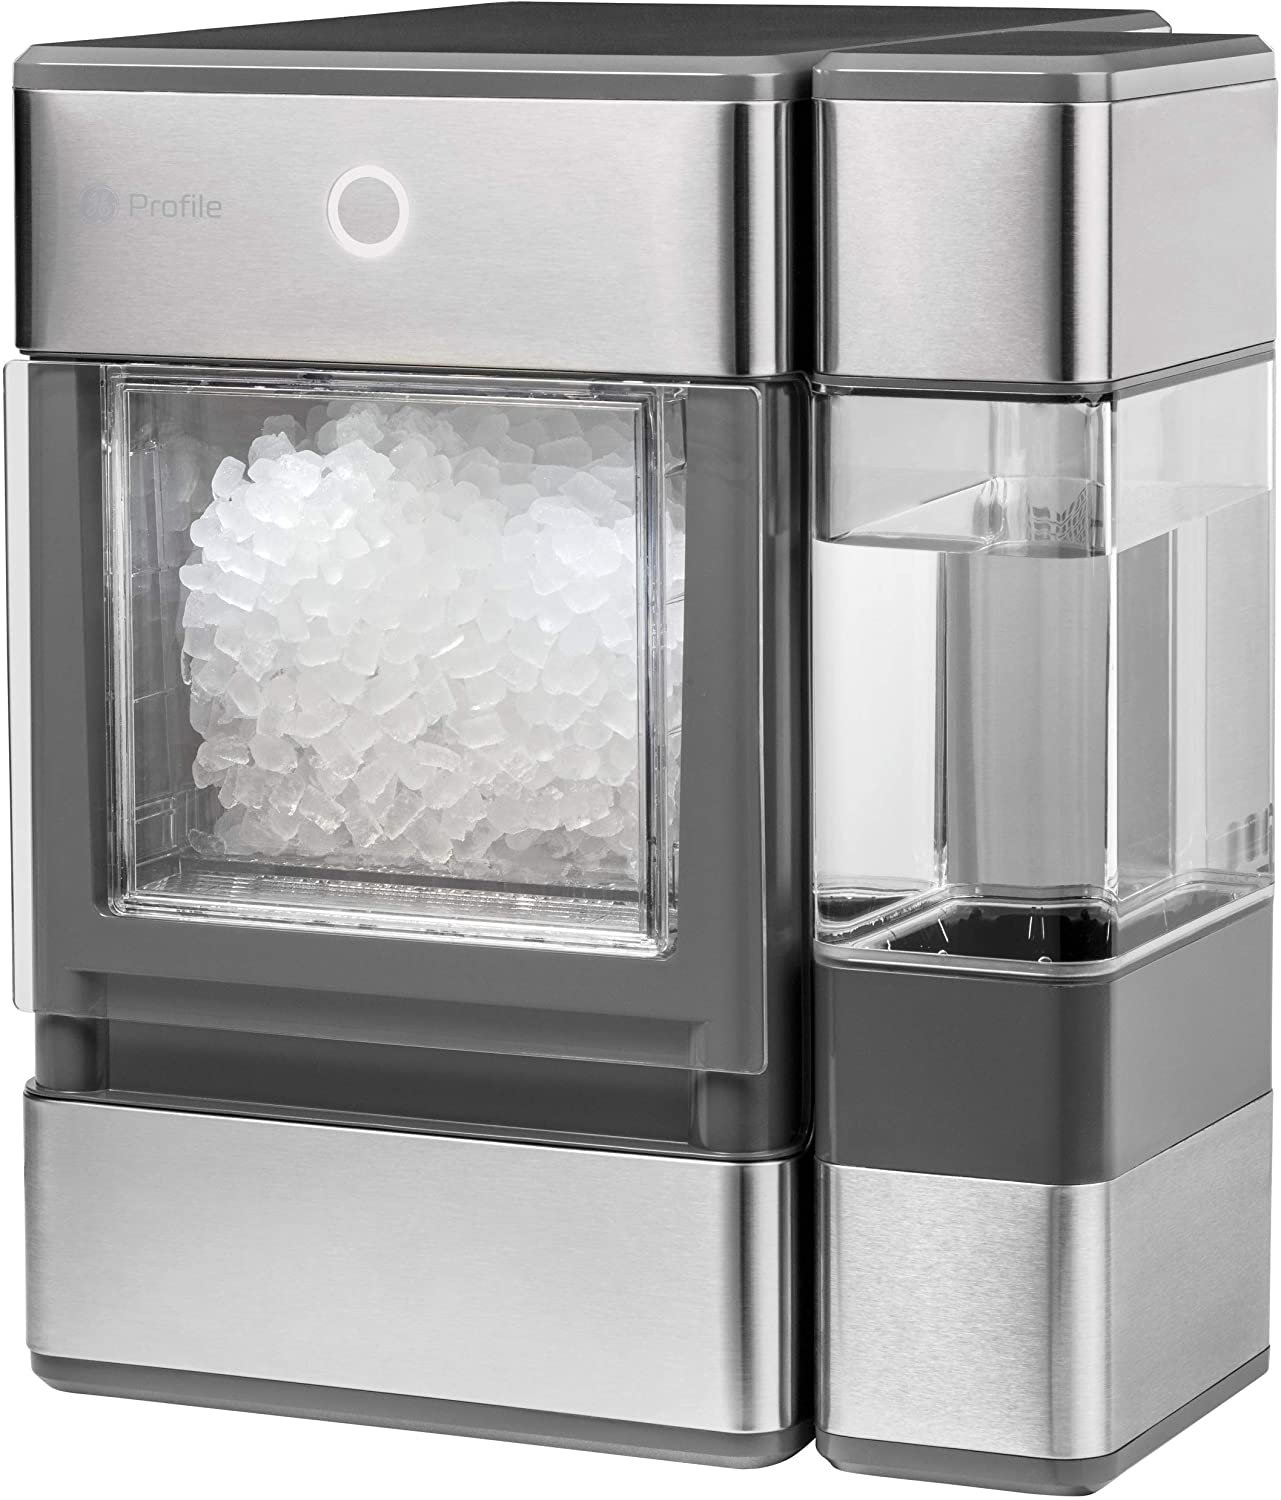 GE Profile Opal Portable Ice Machine with Bluetooth Connectivity